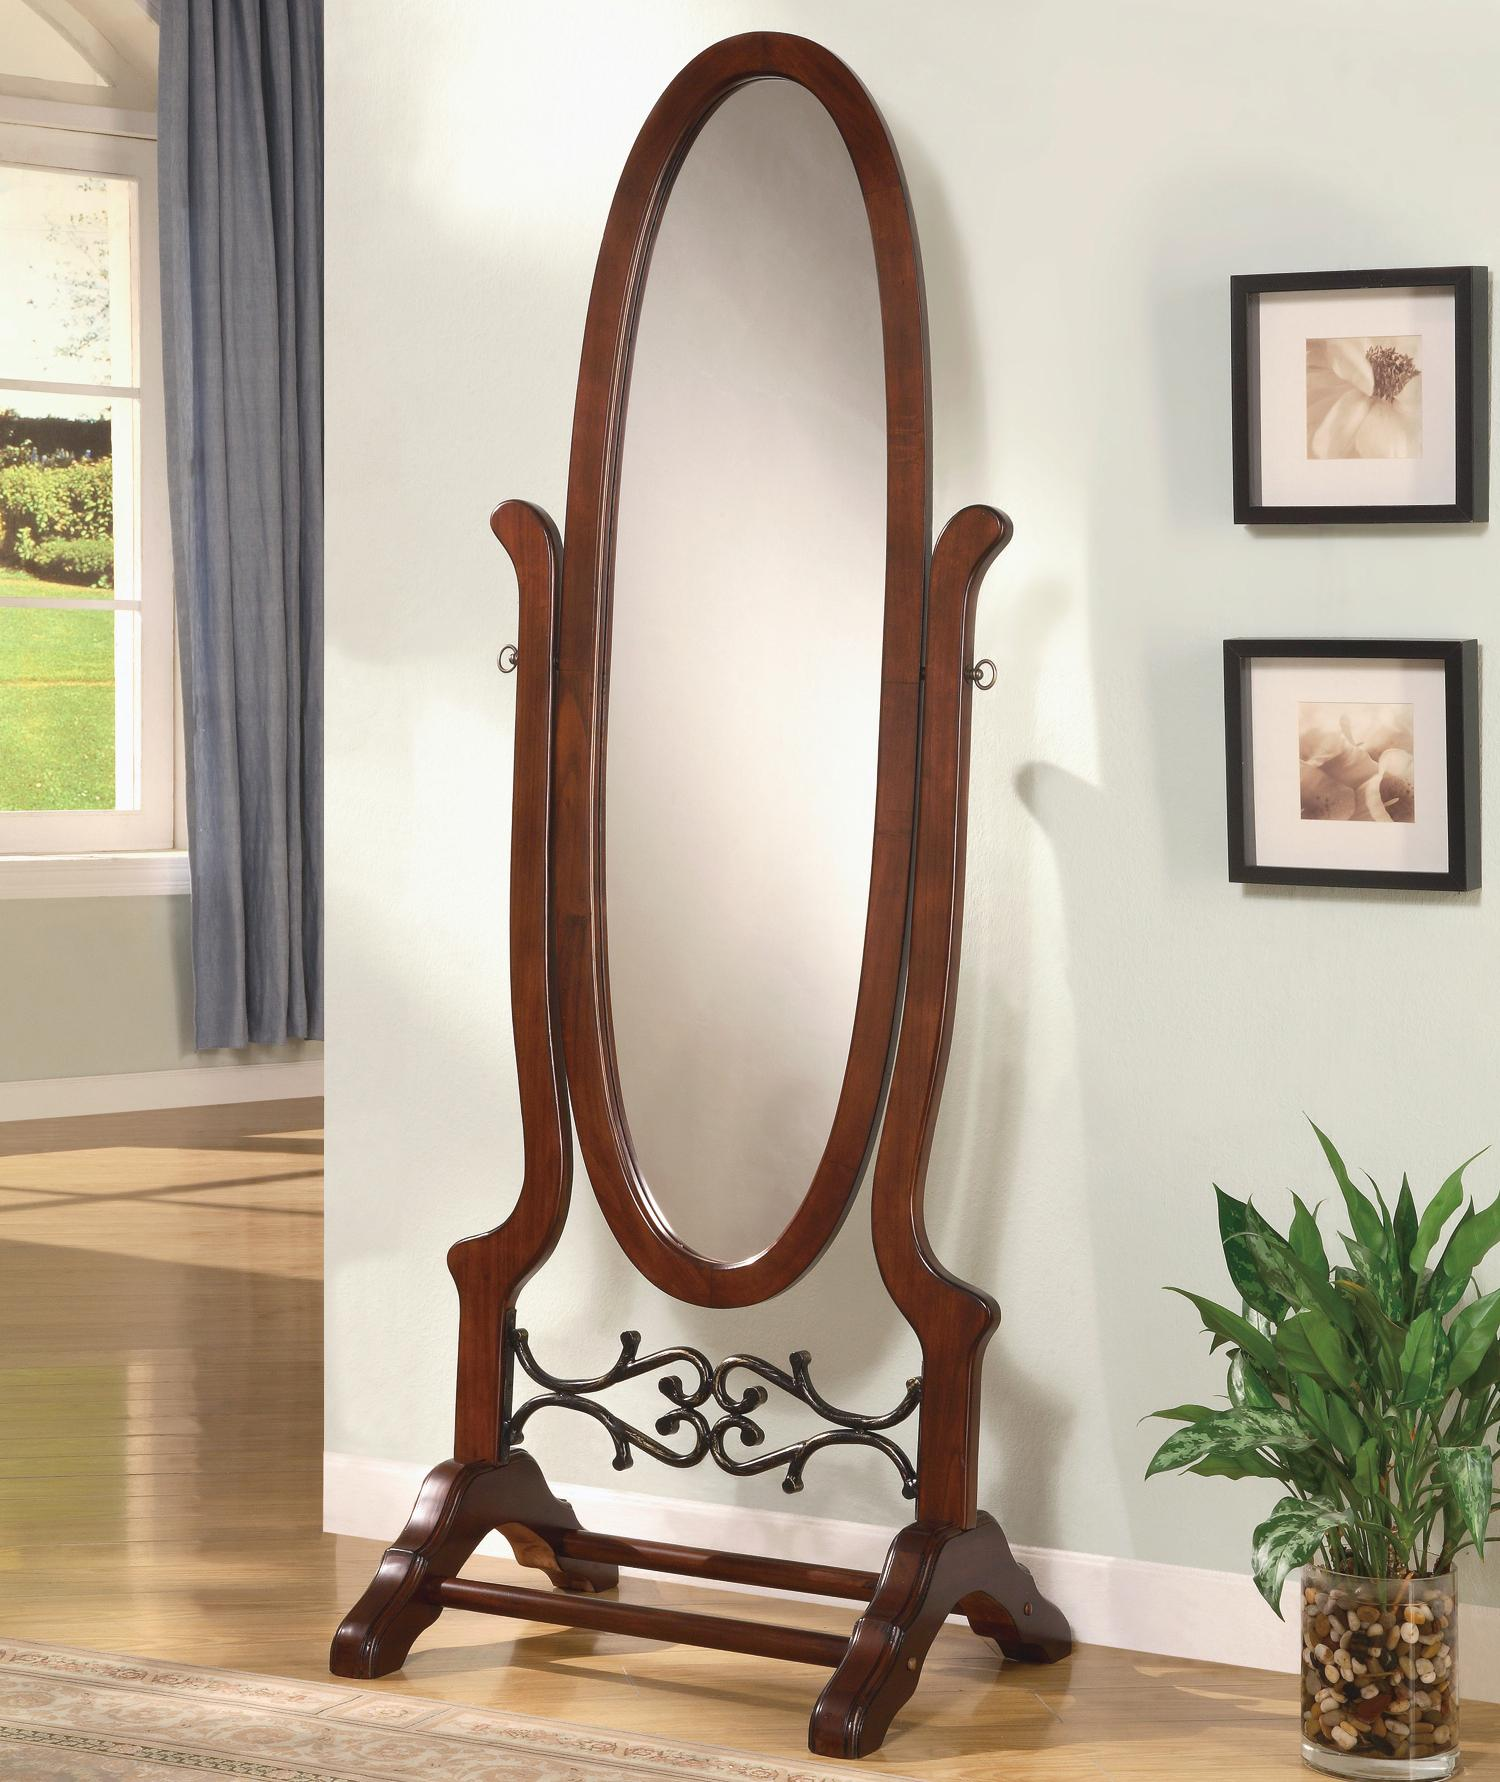 Coaster Accent Mirrors Cheval Mirror - Item Number: 900466